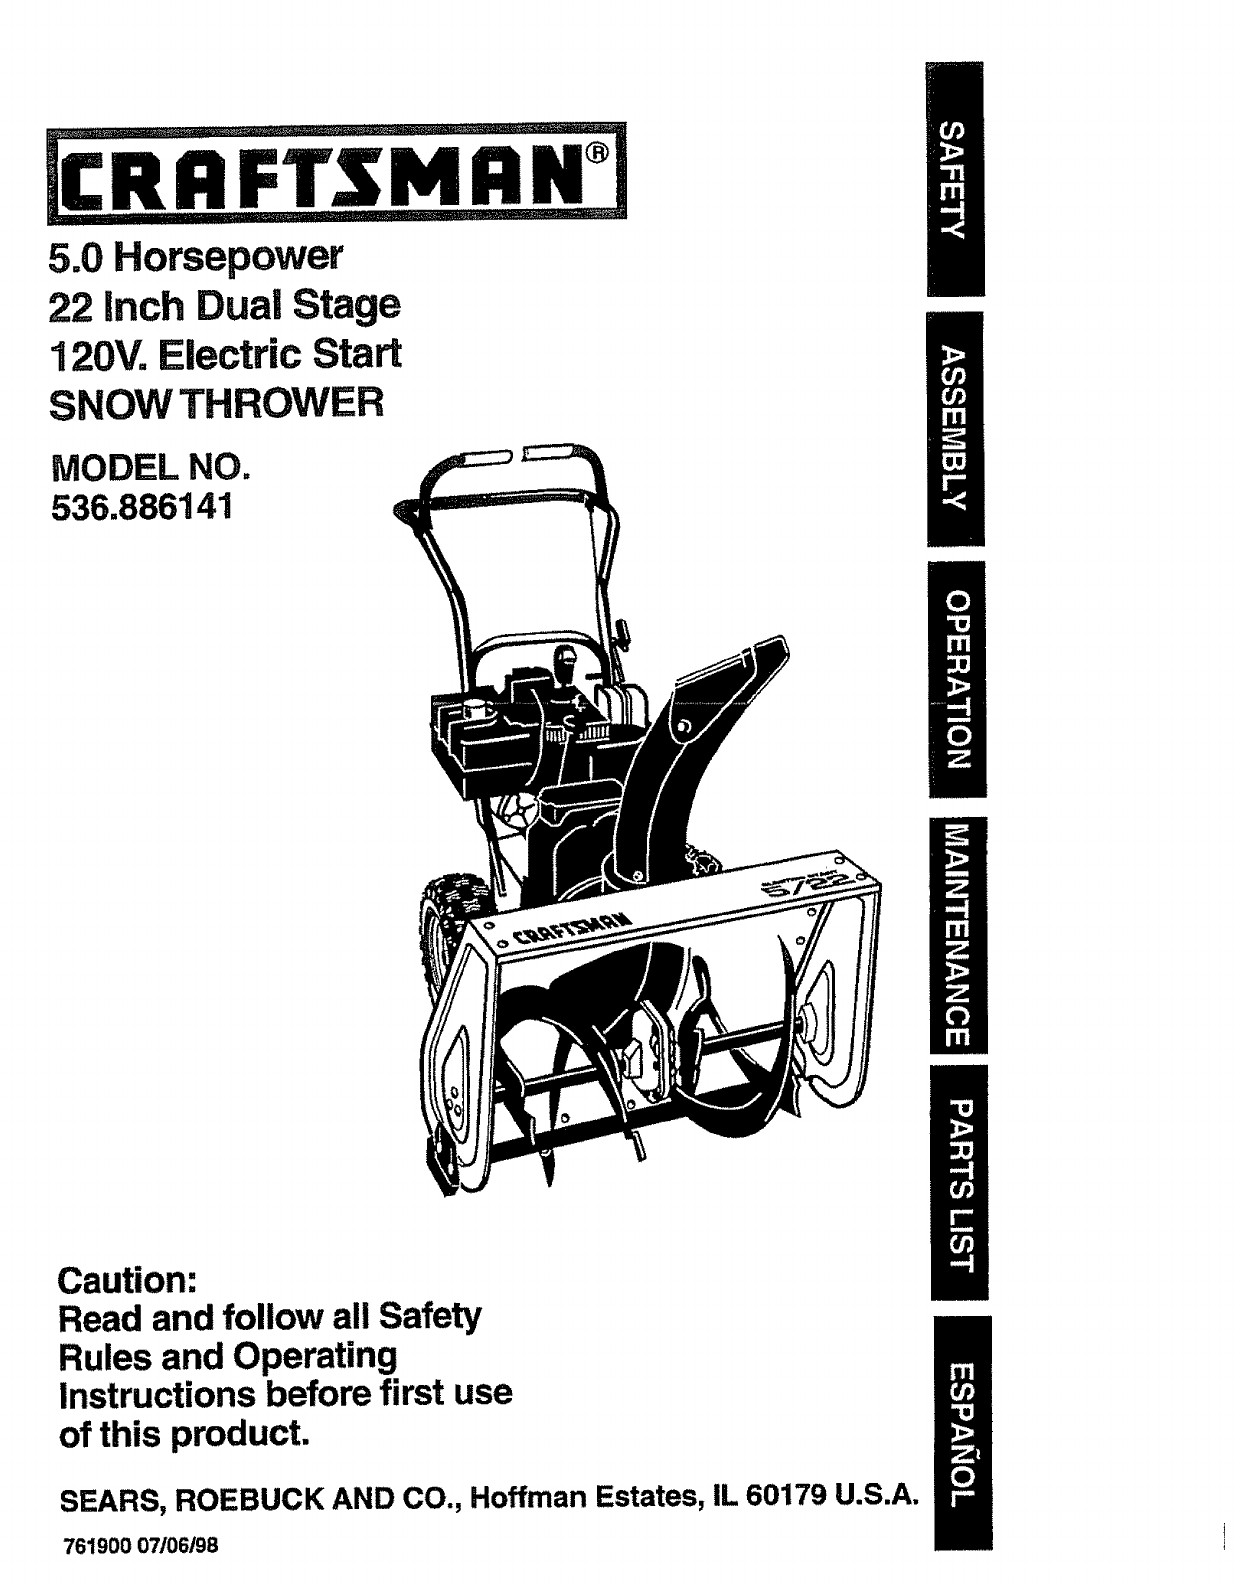 Noma Snowblower 24 Electric Start Operating Instructions